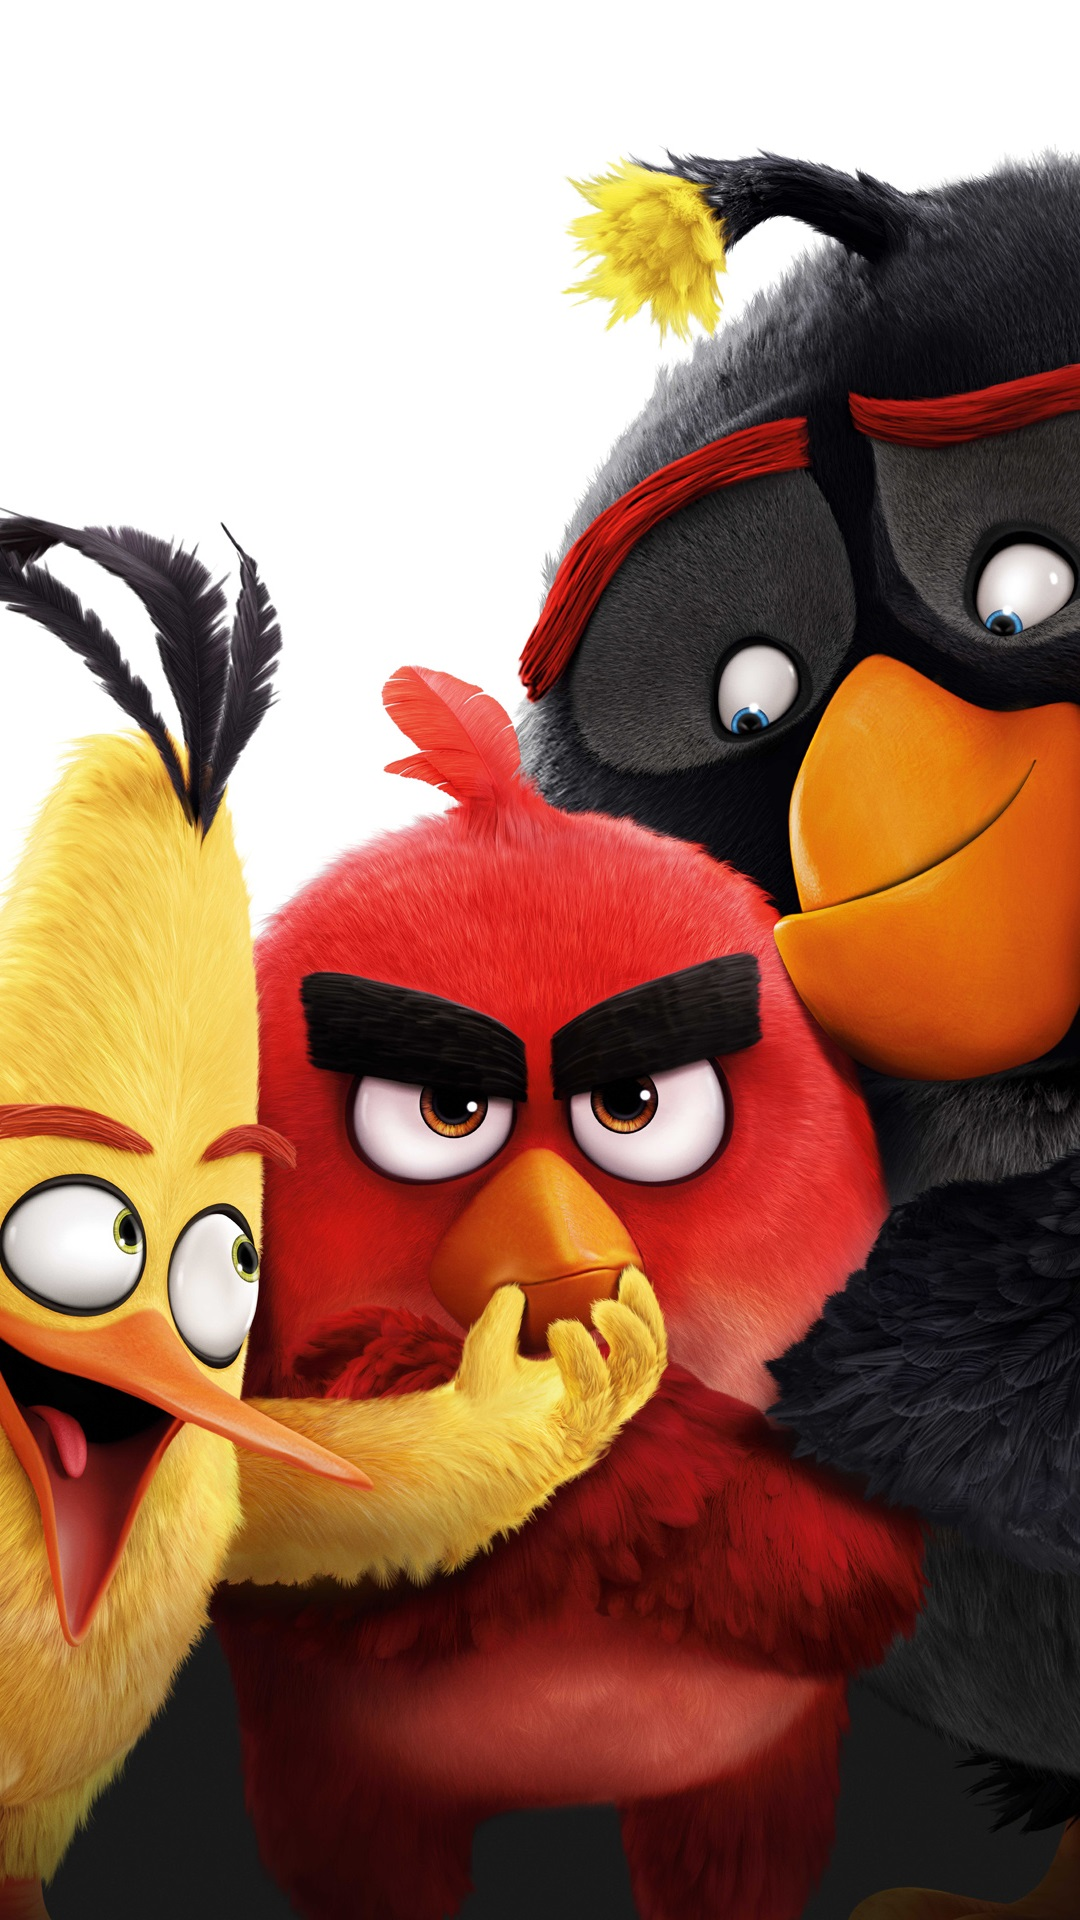 Simple Wallpaper Movie Iphone 5 - Angry-Birds-movie-2016_1080x1920_iPhone_6_Plus_wallpaper  Perfect Image Reference_948745.jpg